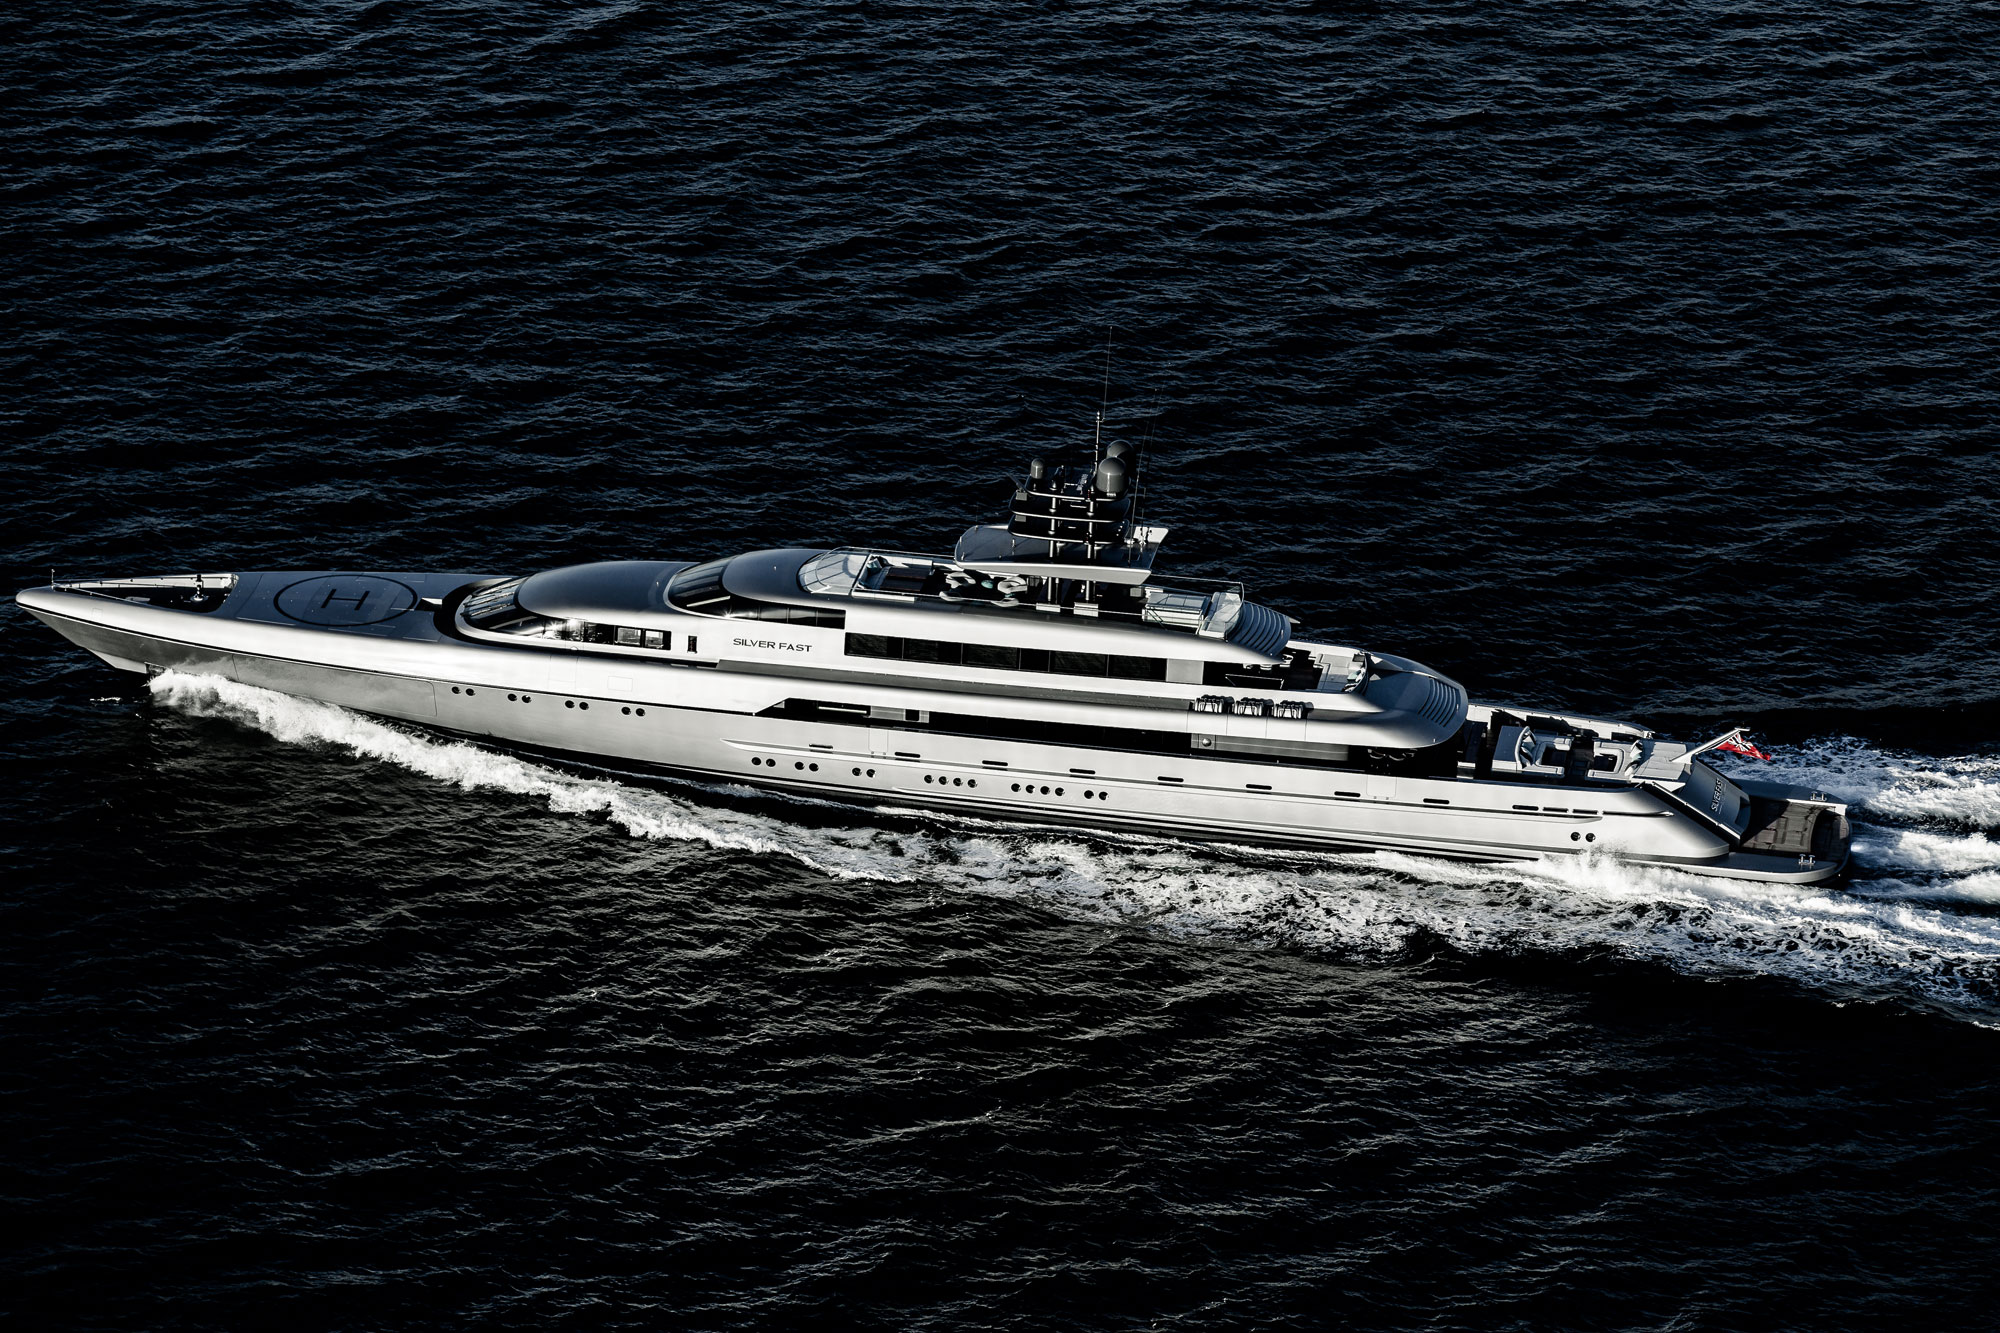 SILVER FAST is the world's largest and fastest aluminium motor yacht with conventional propulsion